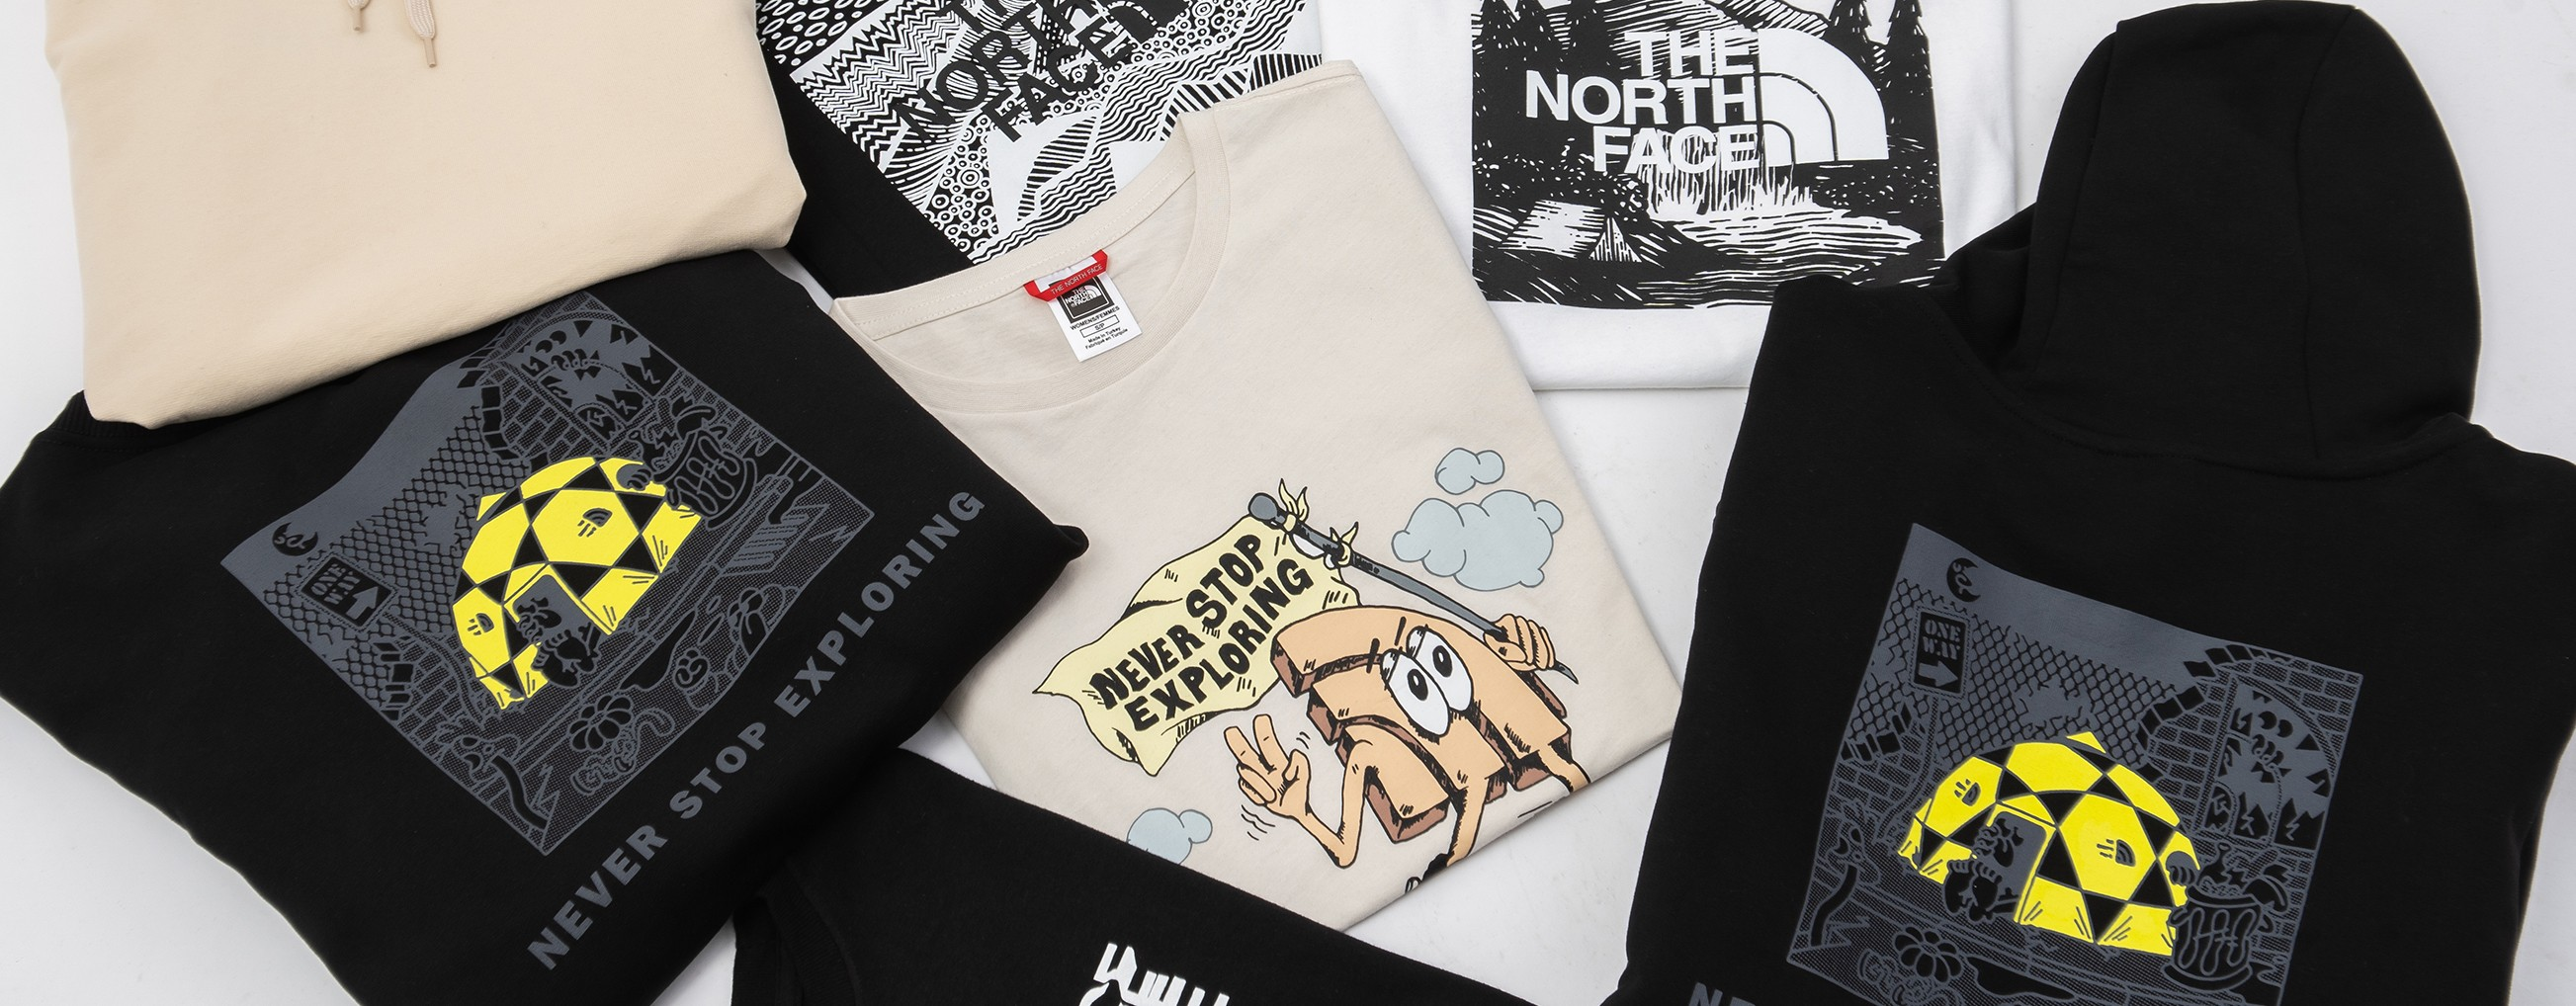 The North Face - New Gear Available